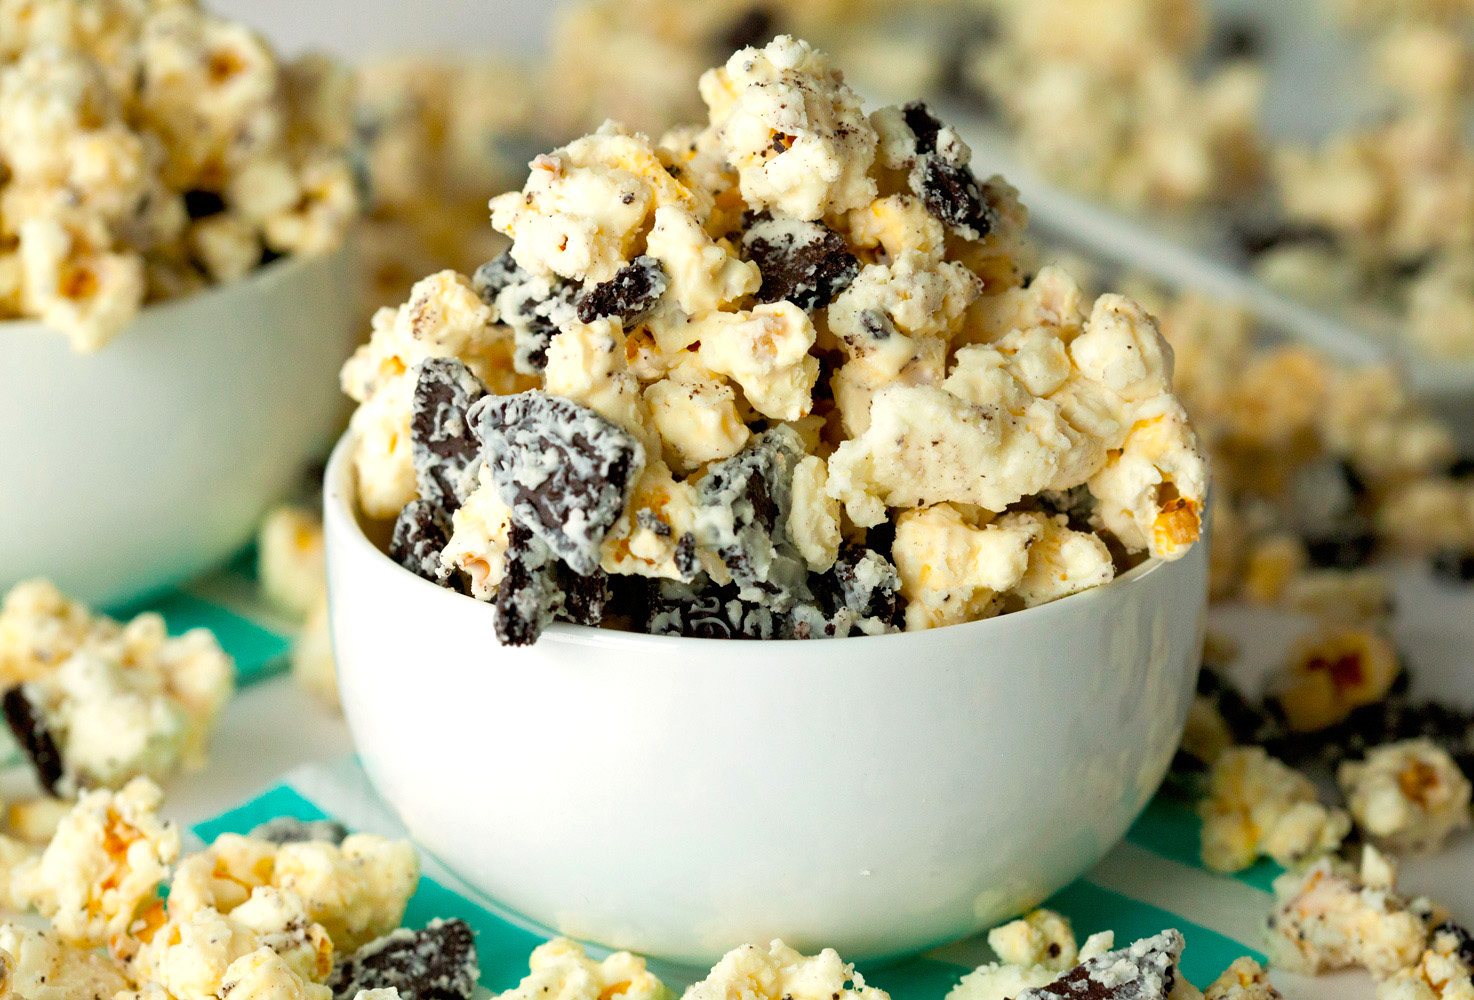 ... with buttery popcorn and chunks of cookies – what's not to love